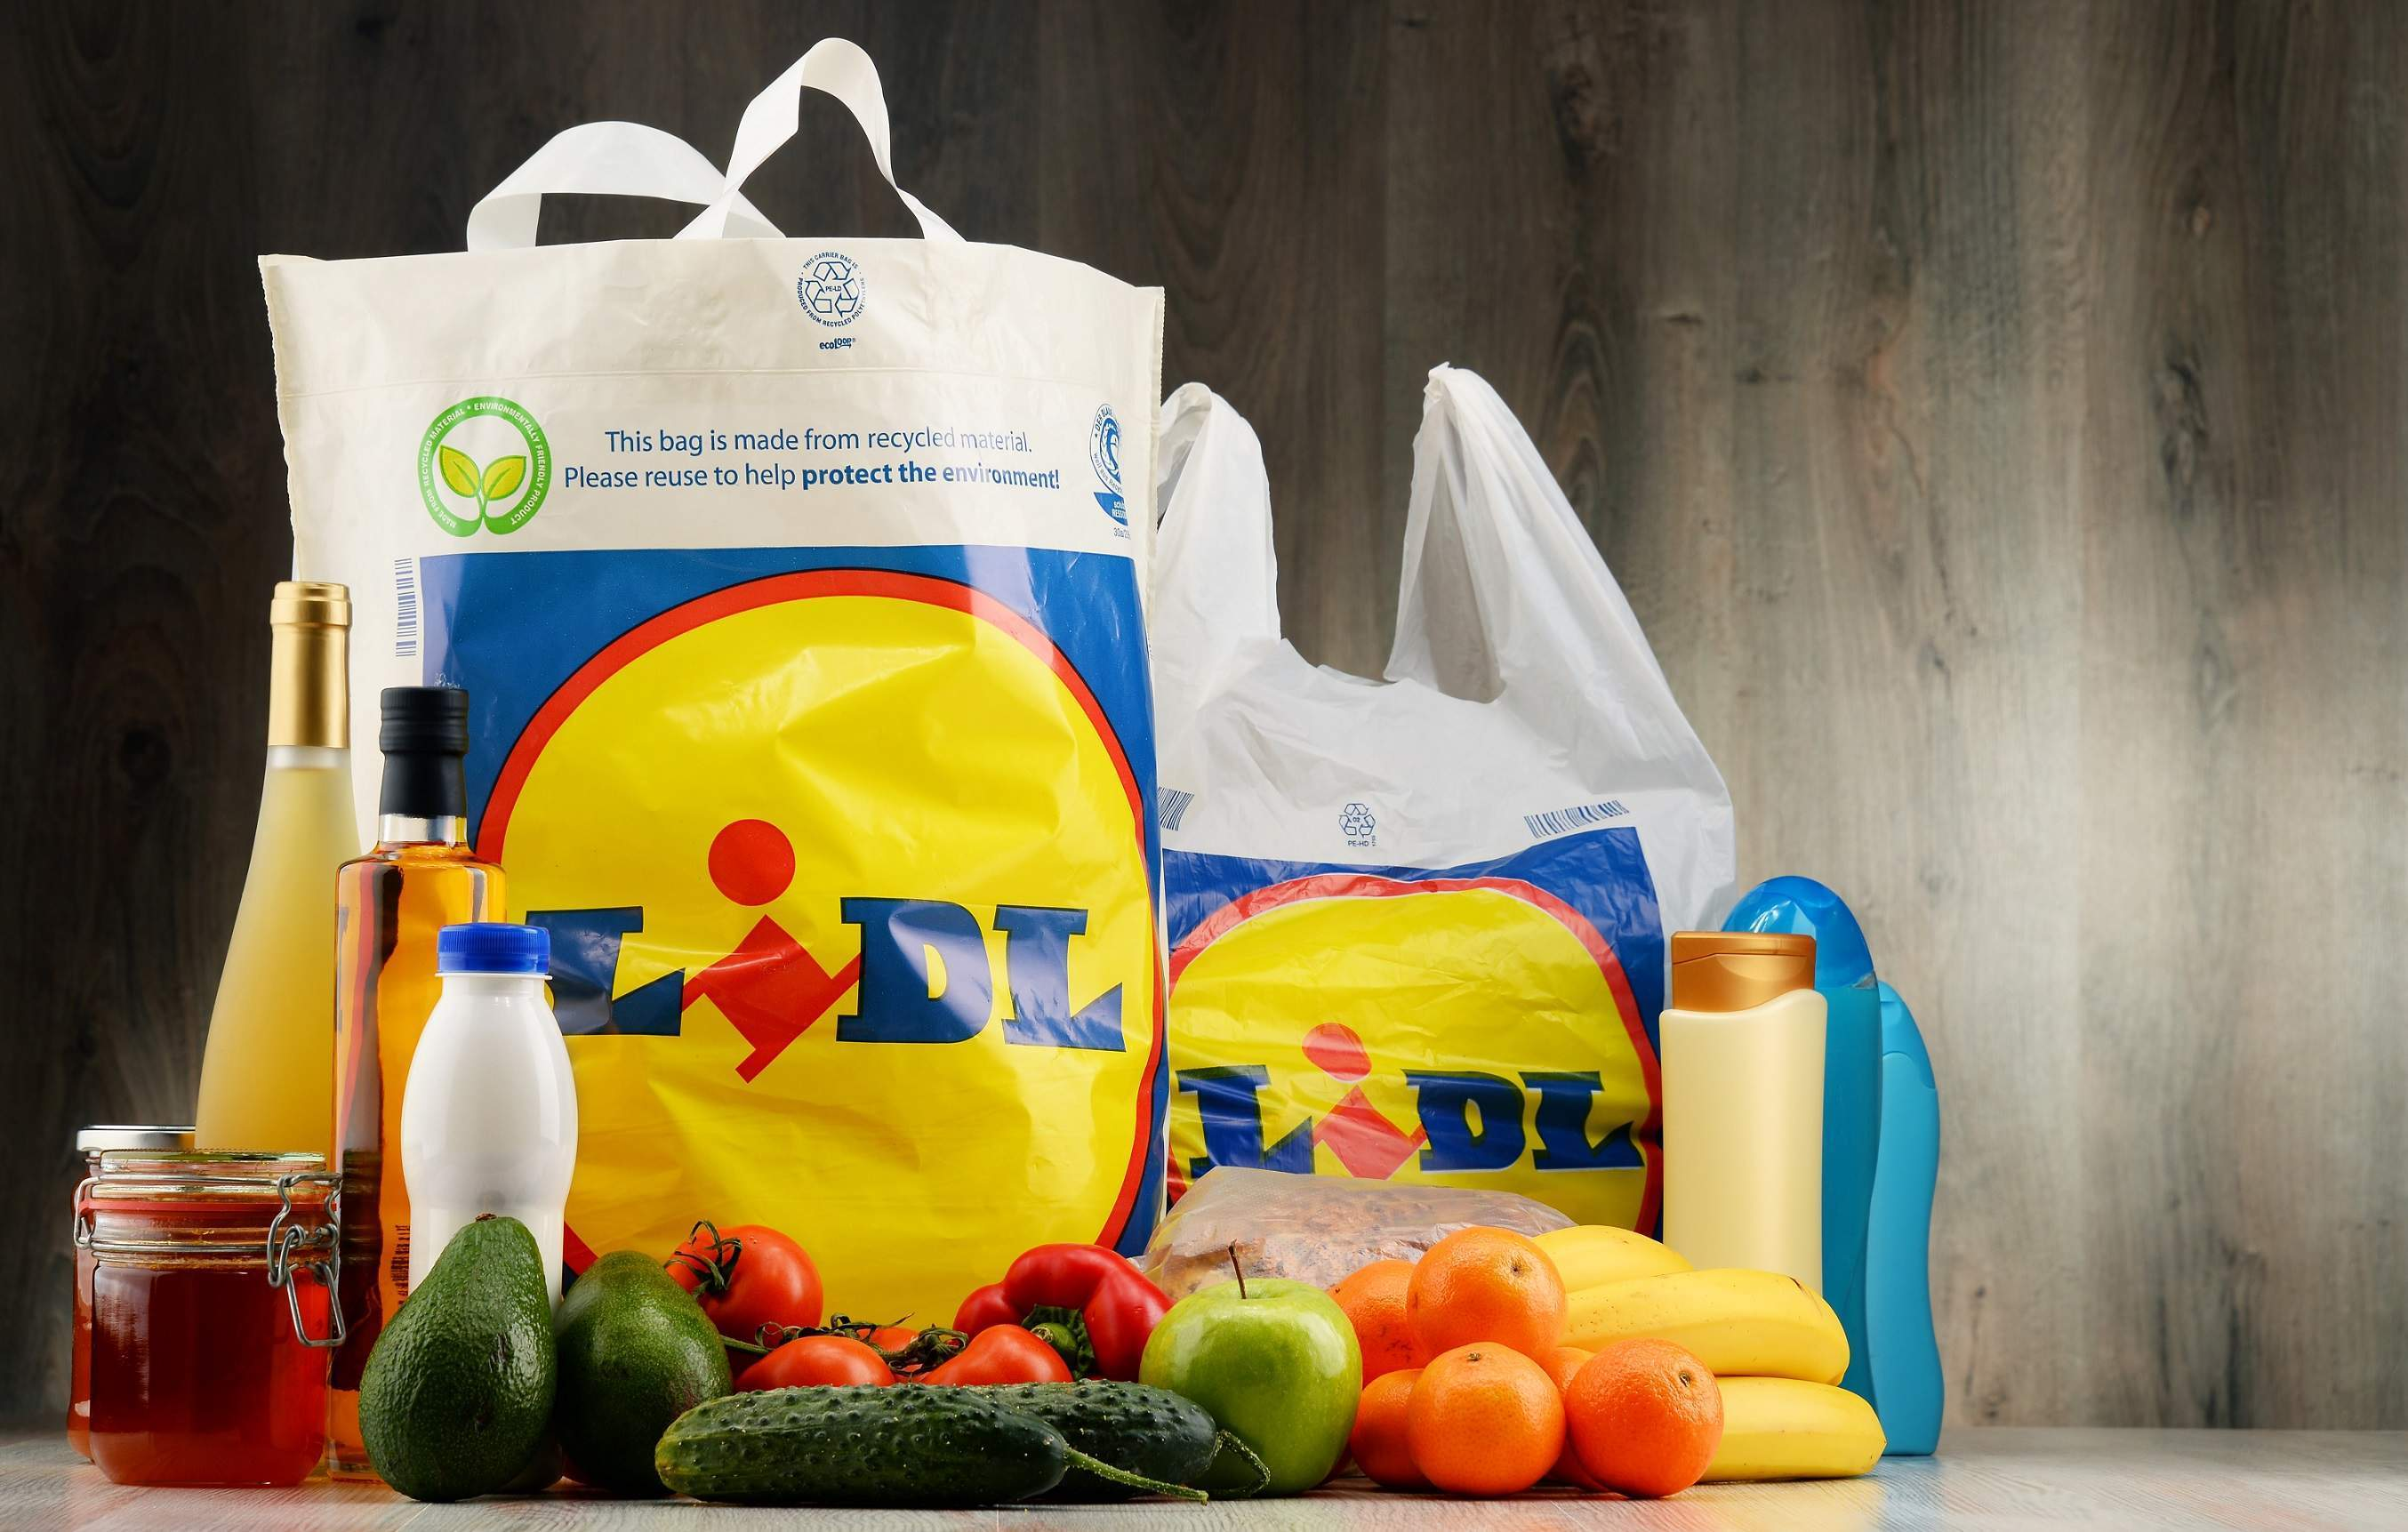 Discount supermarkets reign supreme as Lidl gets ready to overtake Waitrose